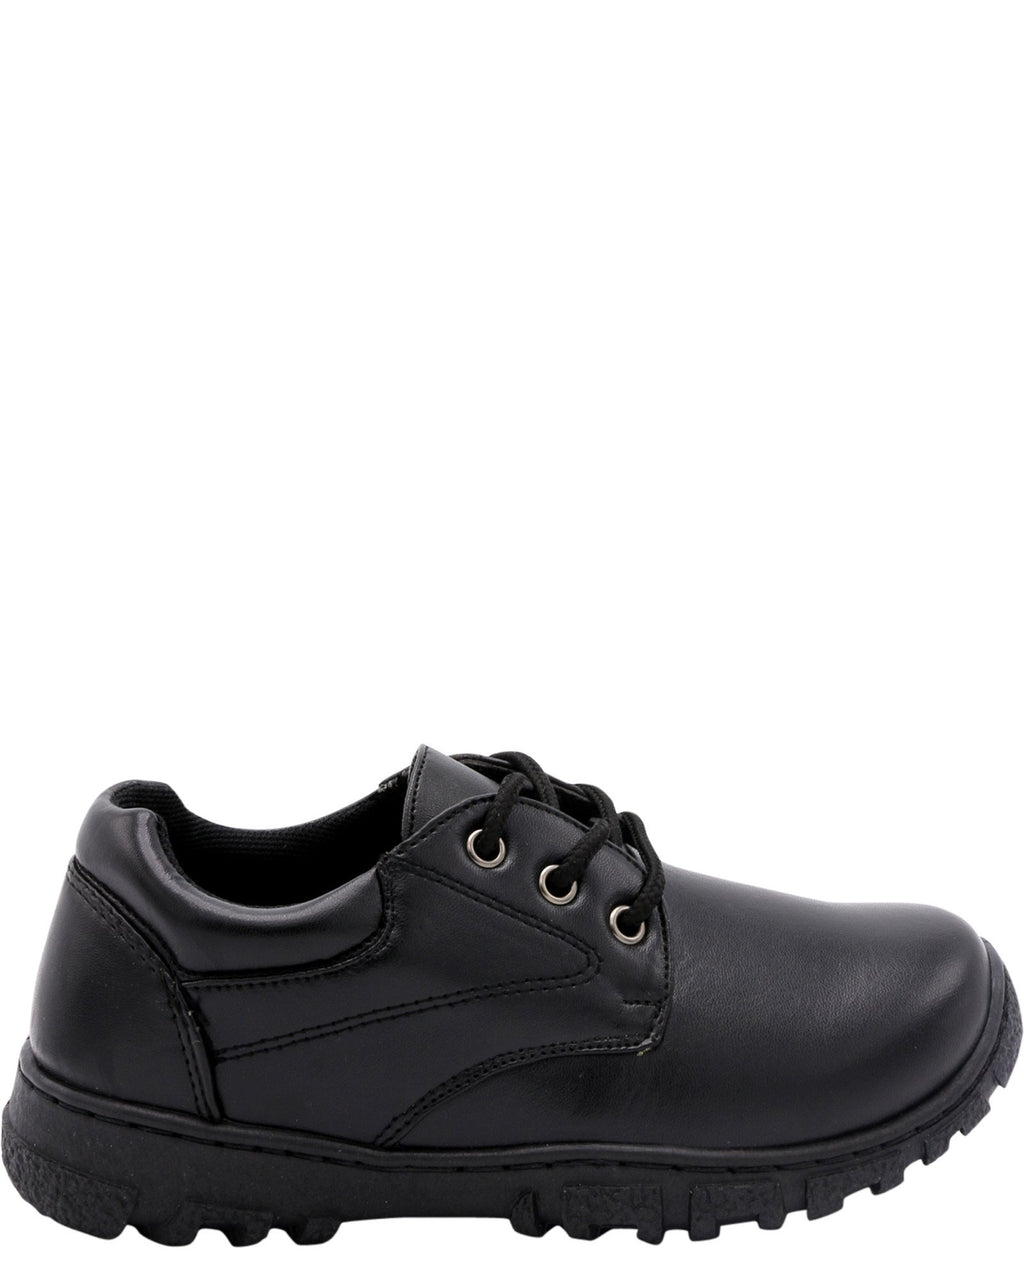 Danuccelli - Boy's Lace-Up School Shoes (Preschool/Grade School) - V.I.M. - 1